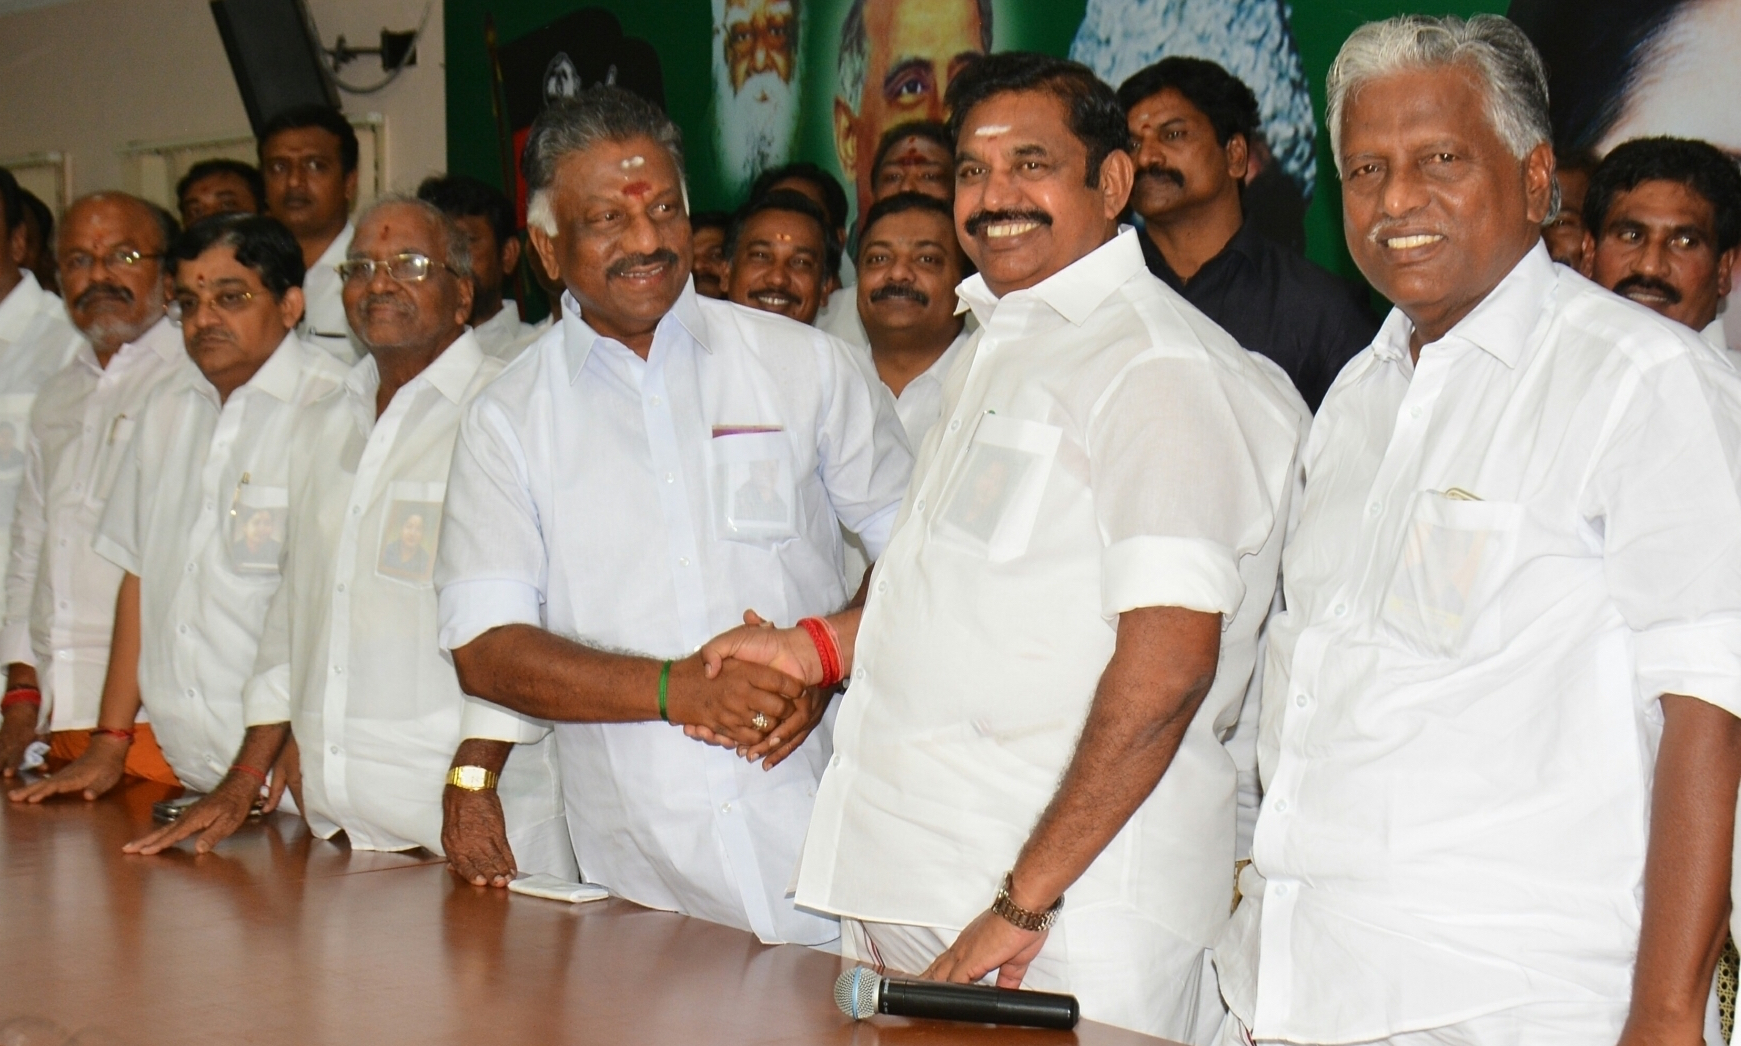 After Tuesday's resolutions, the power in the AIADMK now lies with Tamil Nadu Chief Minister Edappadi K Palaniswami (second from right) and his deputy O Panneerselvam (third from right). (Credit: IANS)